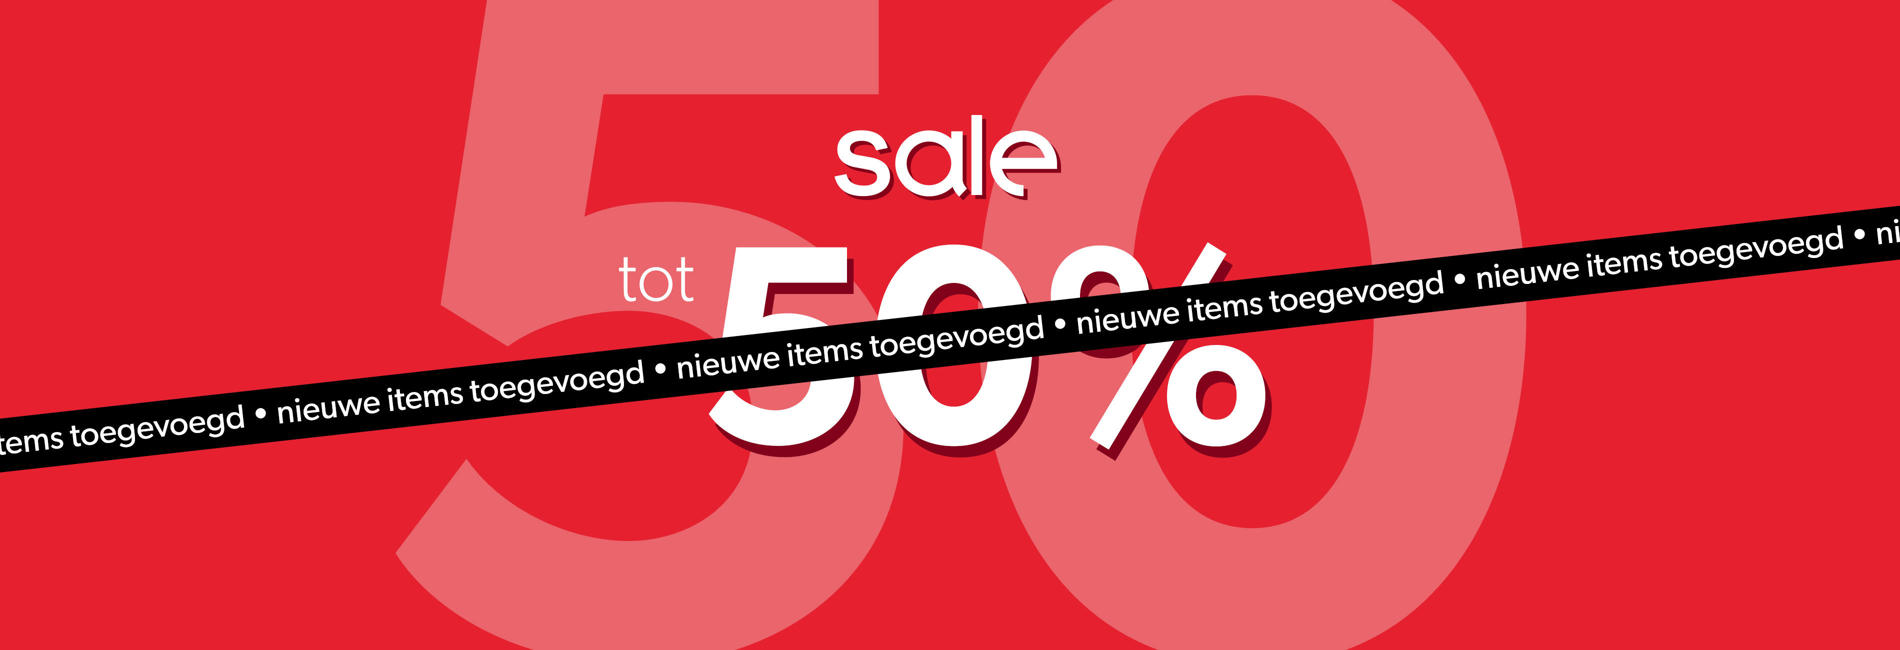 SALE tot 50% new lines added